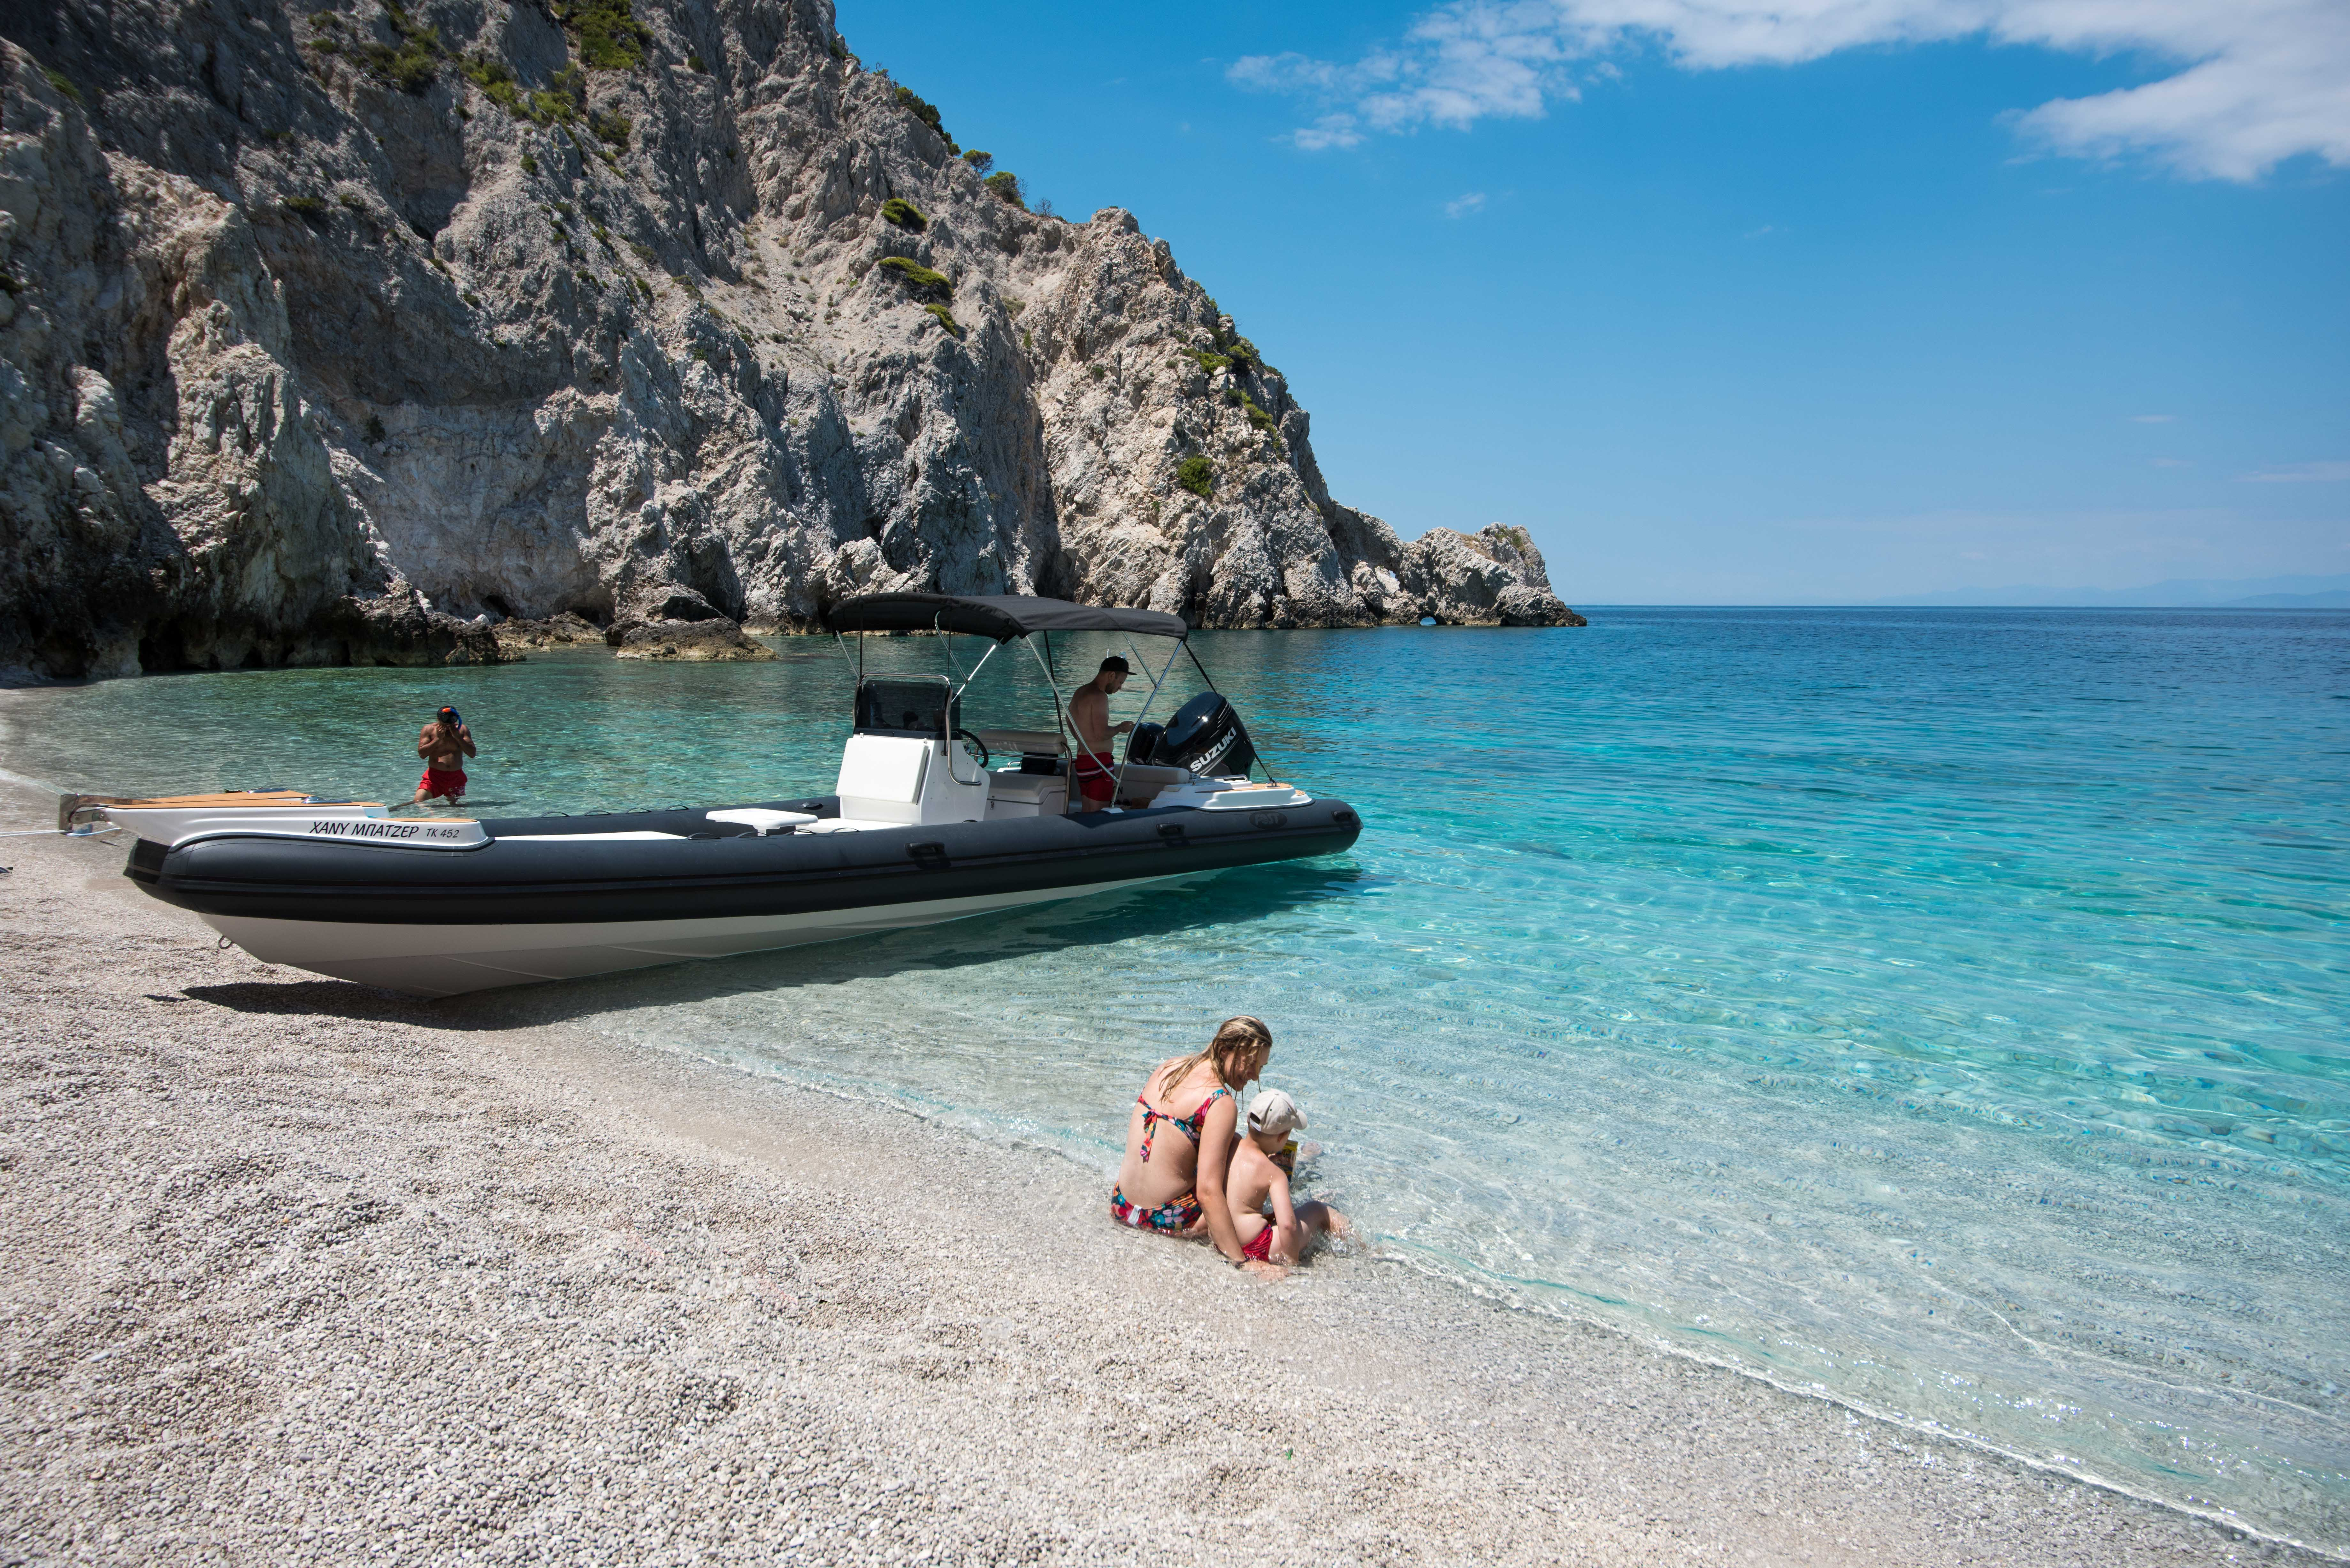 Family boat trip in the white beach organised by Lido Blue